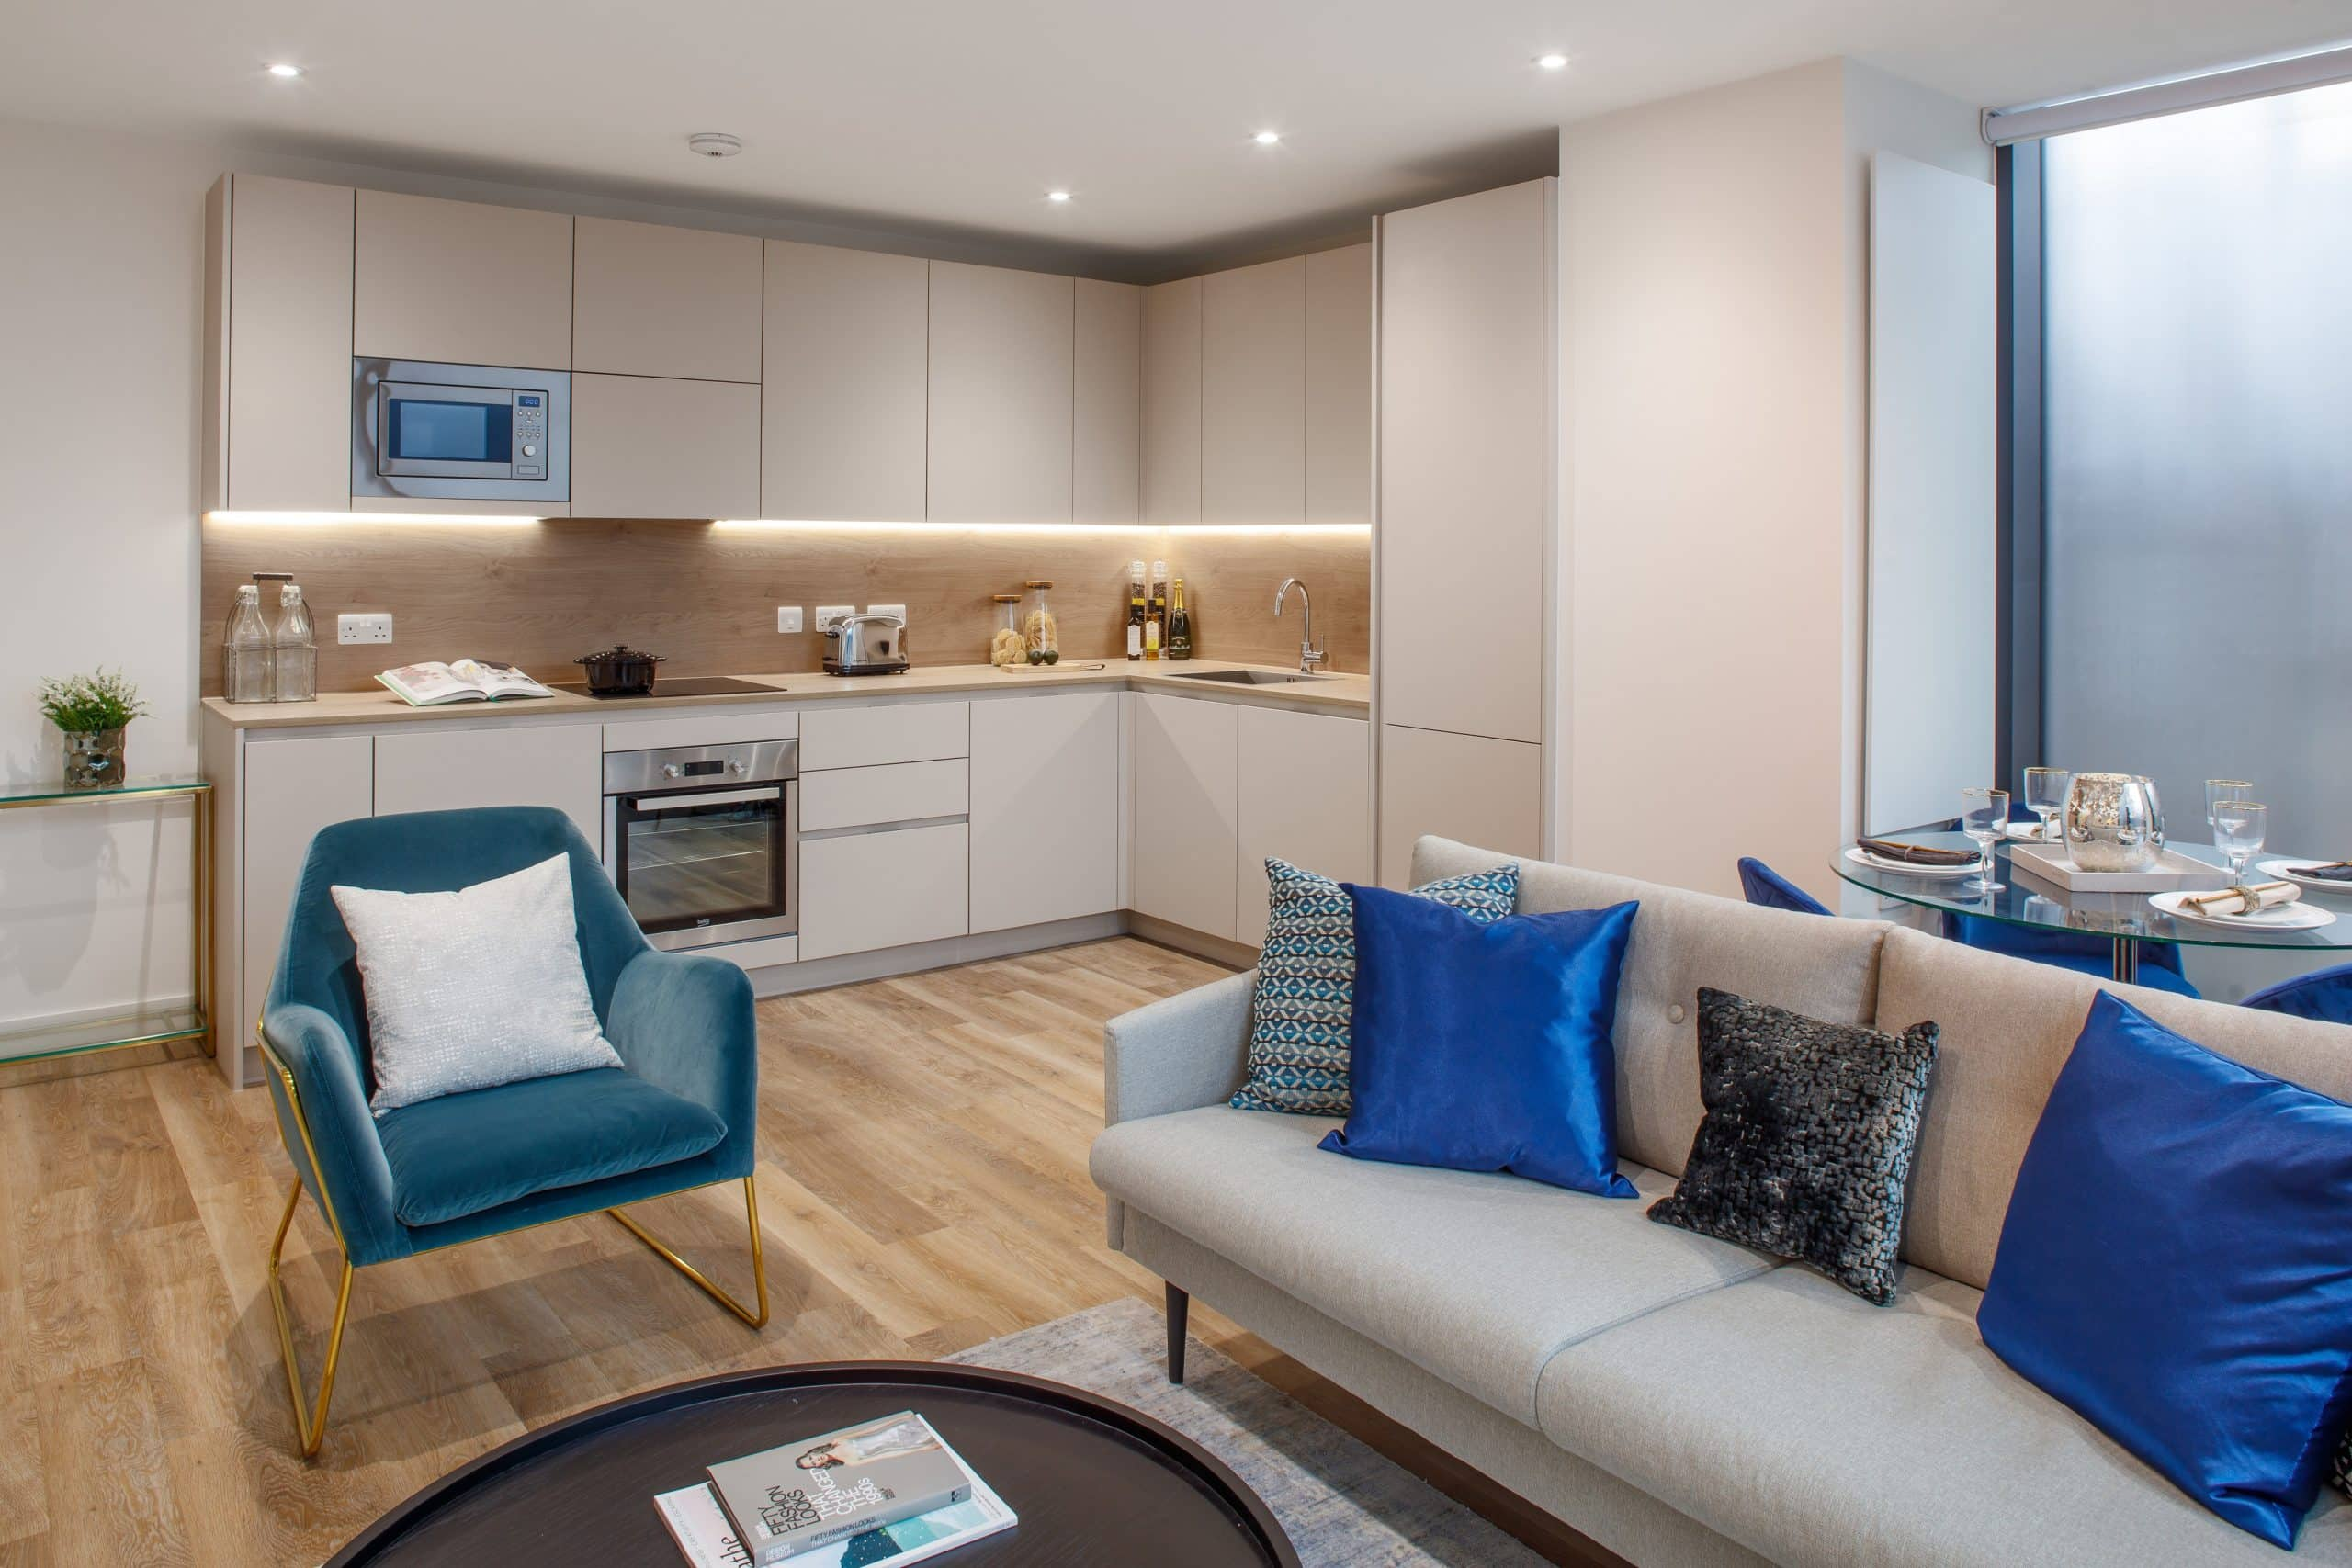 Interior show home photography of L&Q at Queens Quarter development - Shared Ownership and Help to Buy homes available on Share to Buy